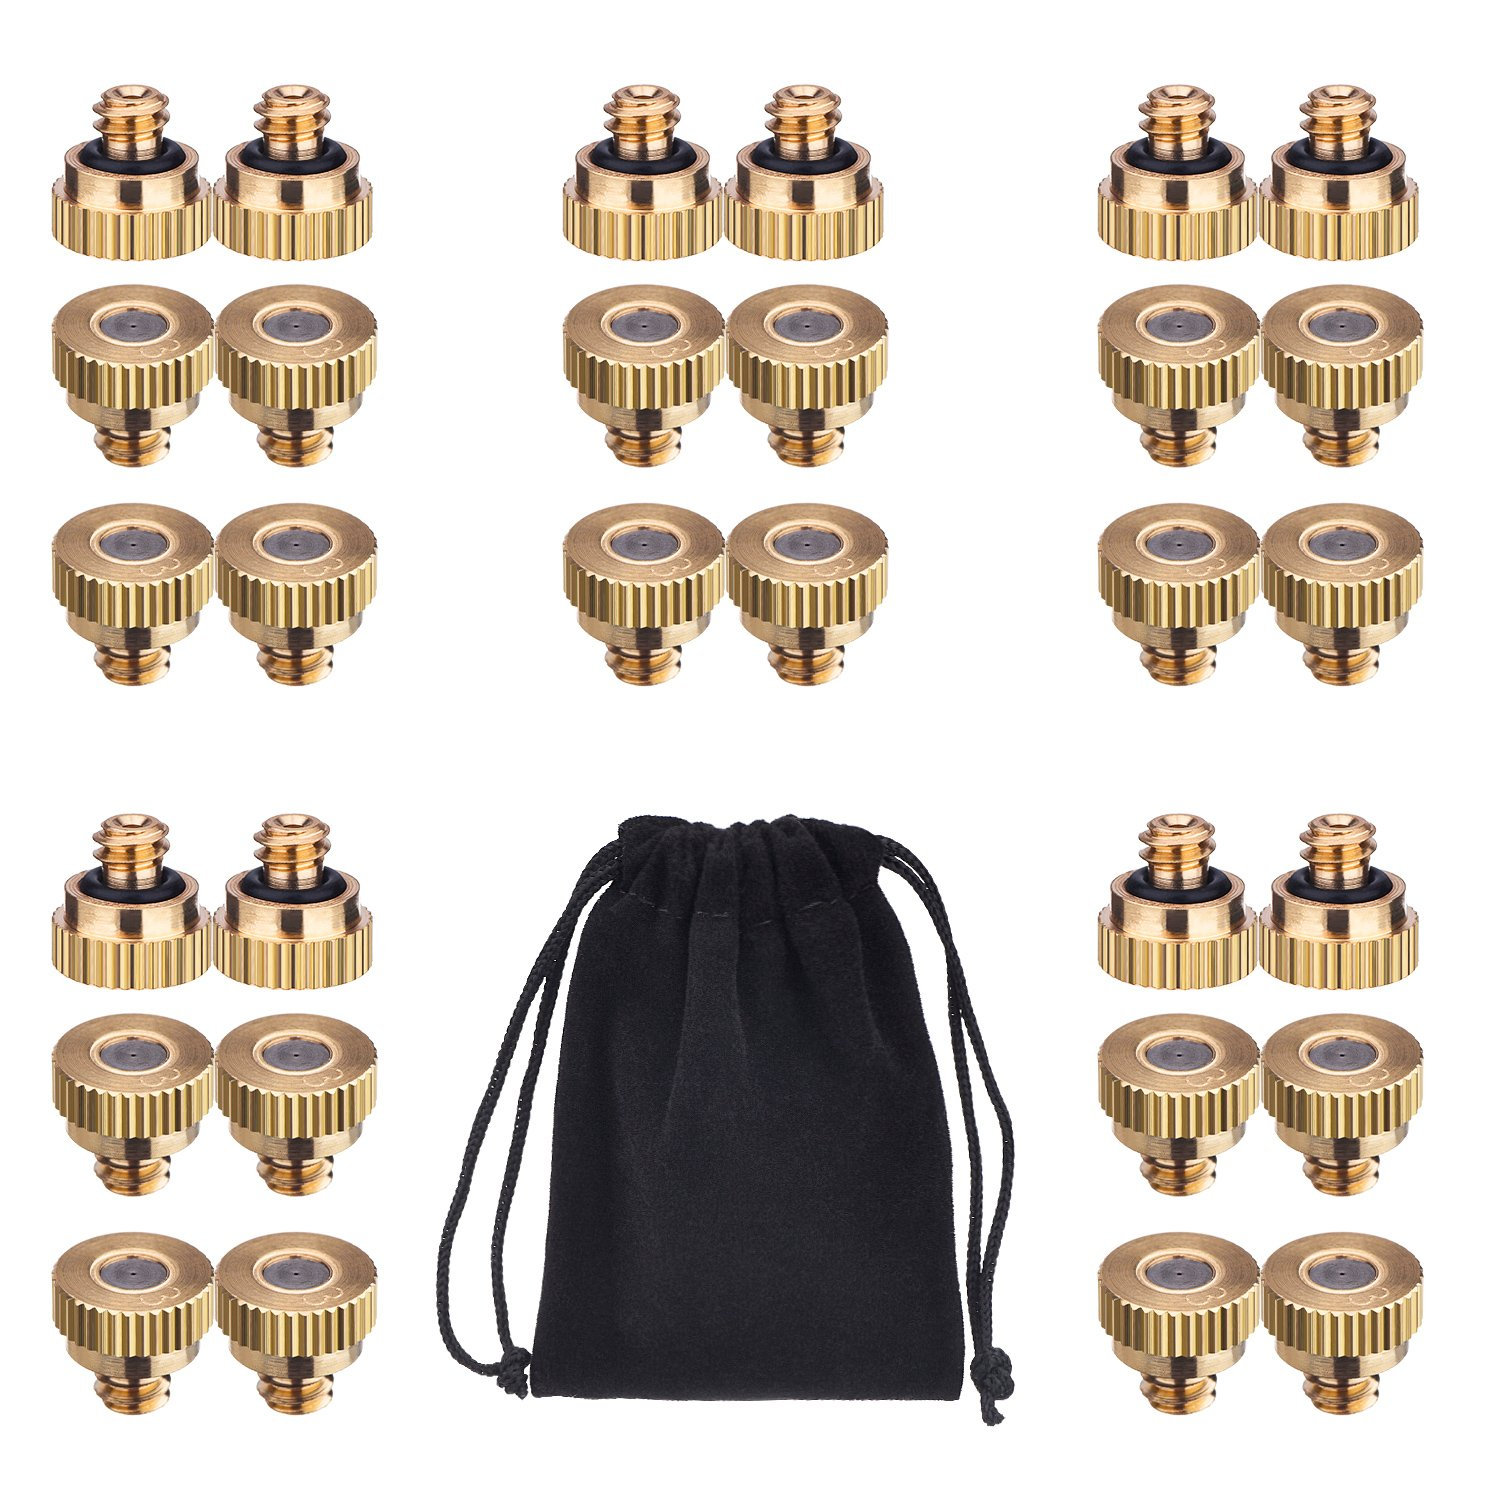 Mudder 30 Pack Misting Nozzles Brass Misting Nozzle for Greenhouse Landscaping Dust Control and Outdoor Cooling System, 10/24 UNC